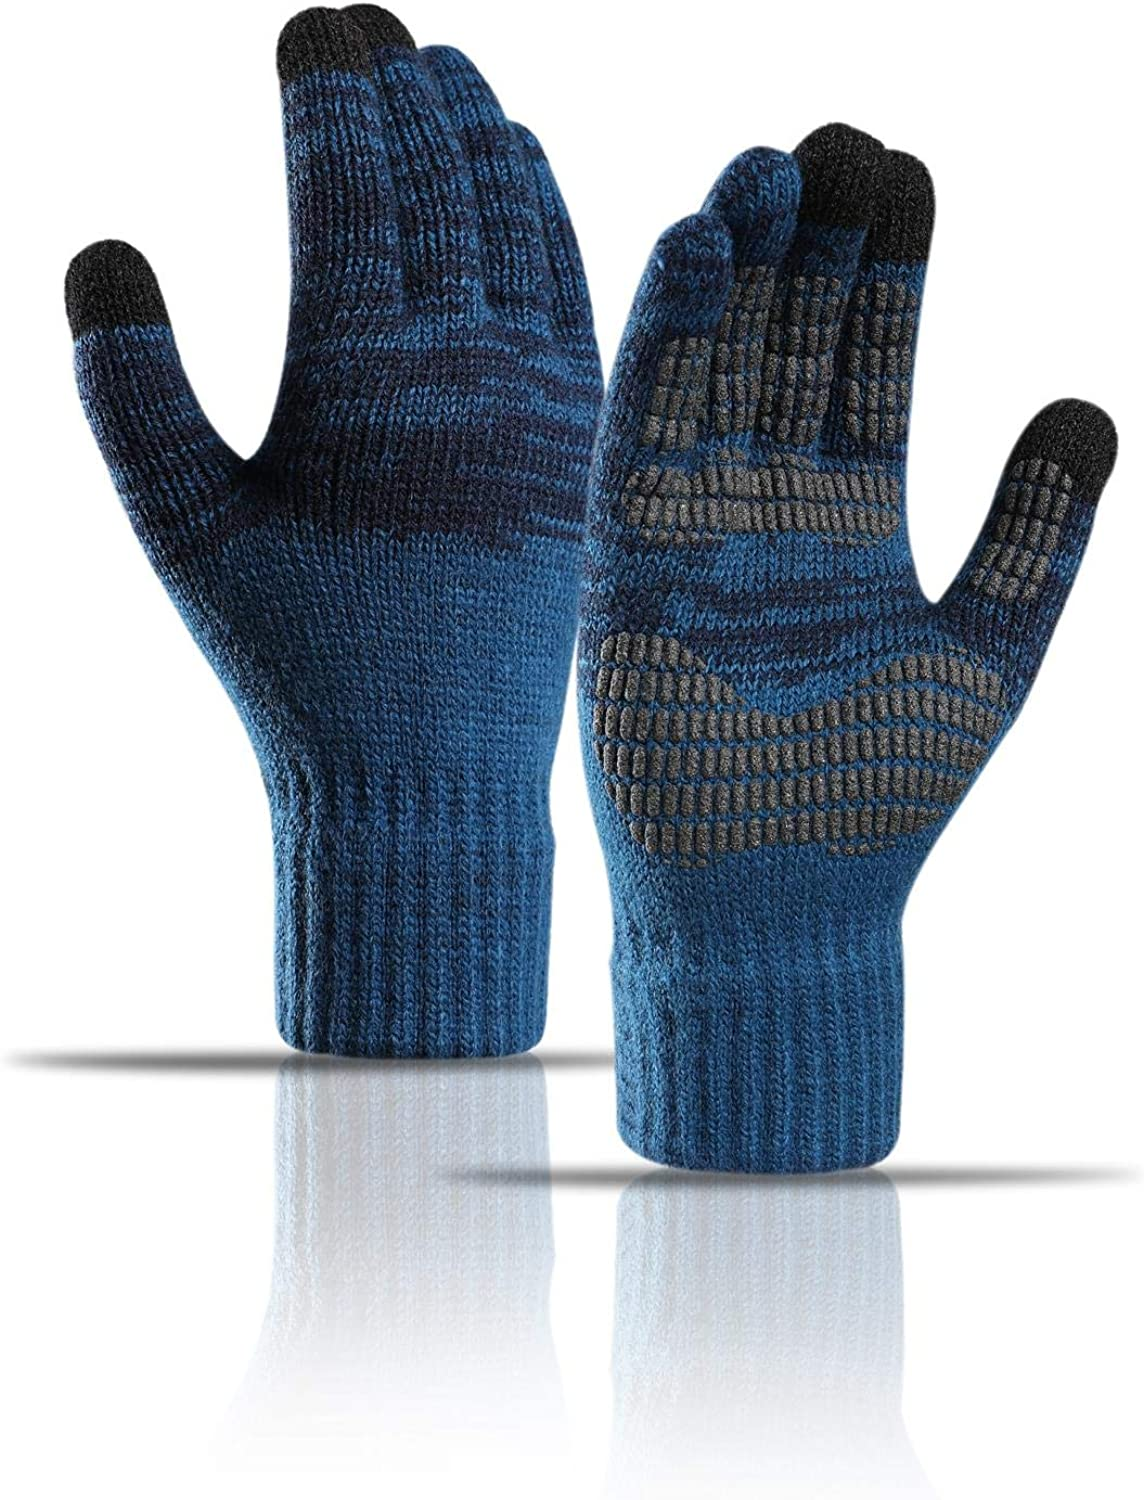 Winter Knit Gloves Touchscreen Warm Thermal Gloves Soft Lining Elastic Cuff Texting Anti-Slip for Women Men